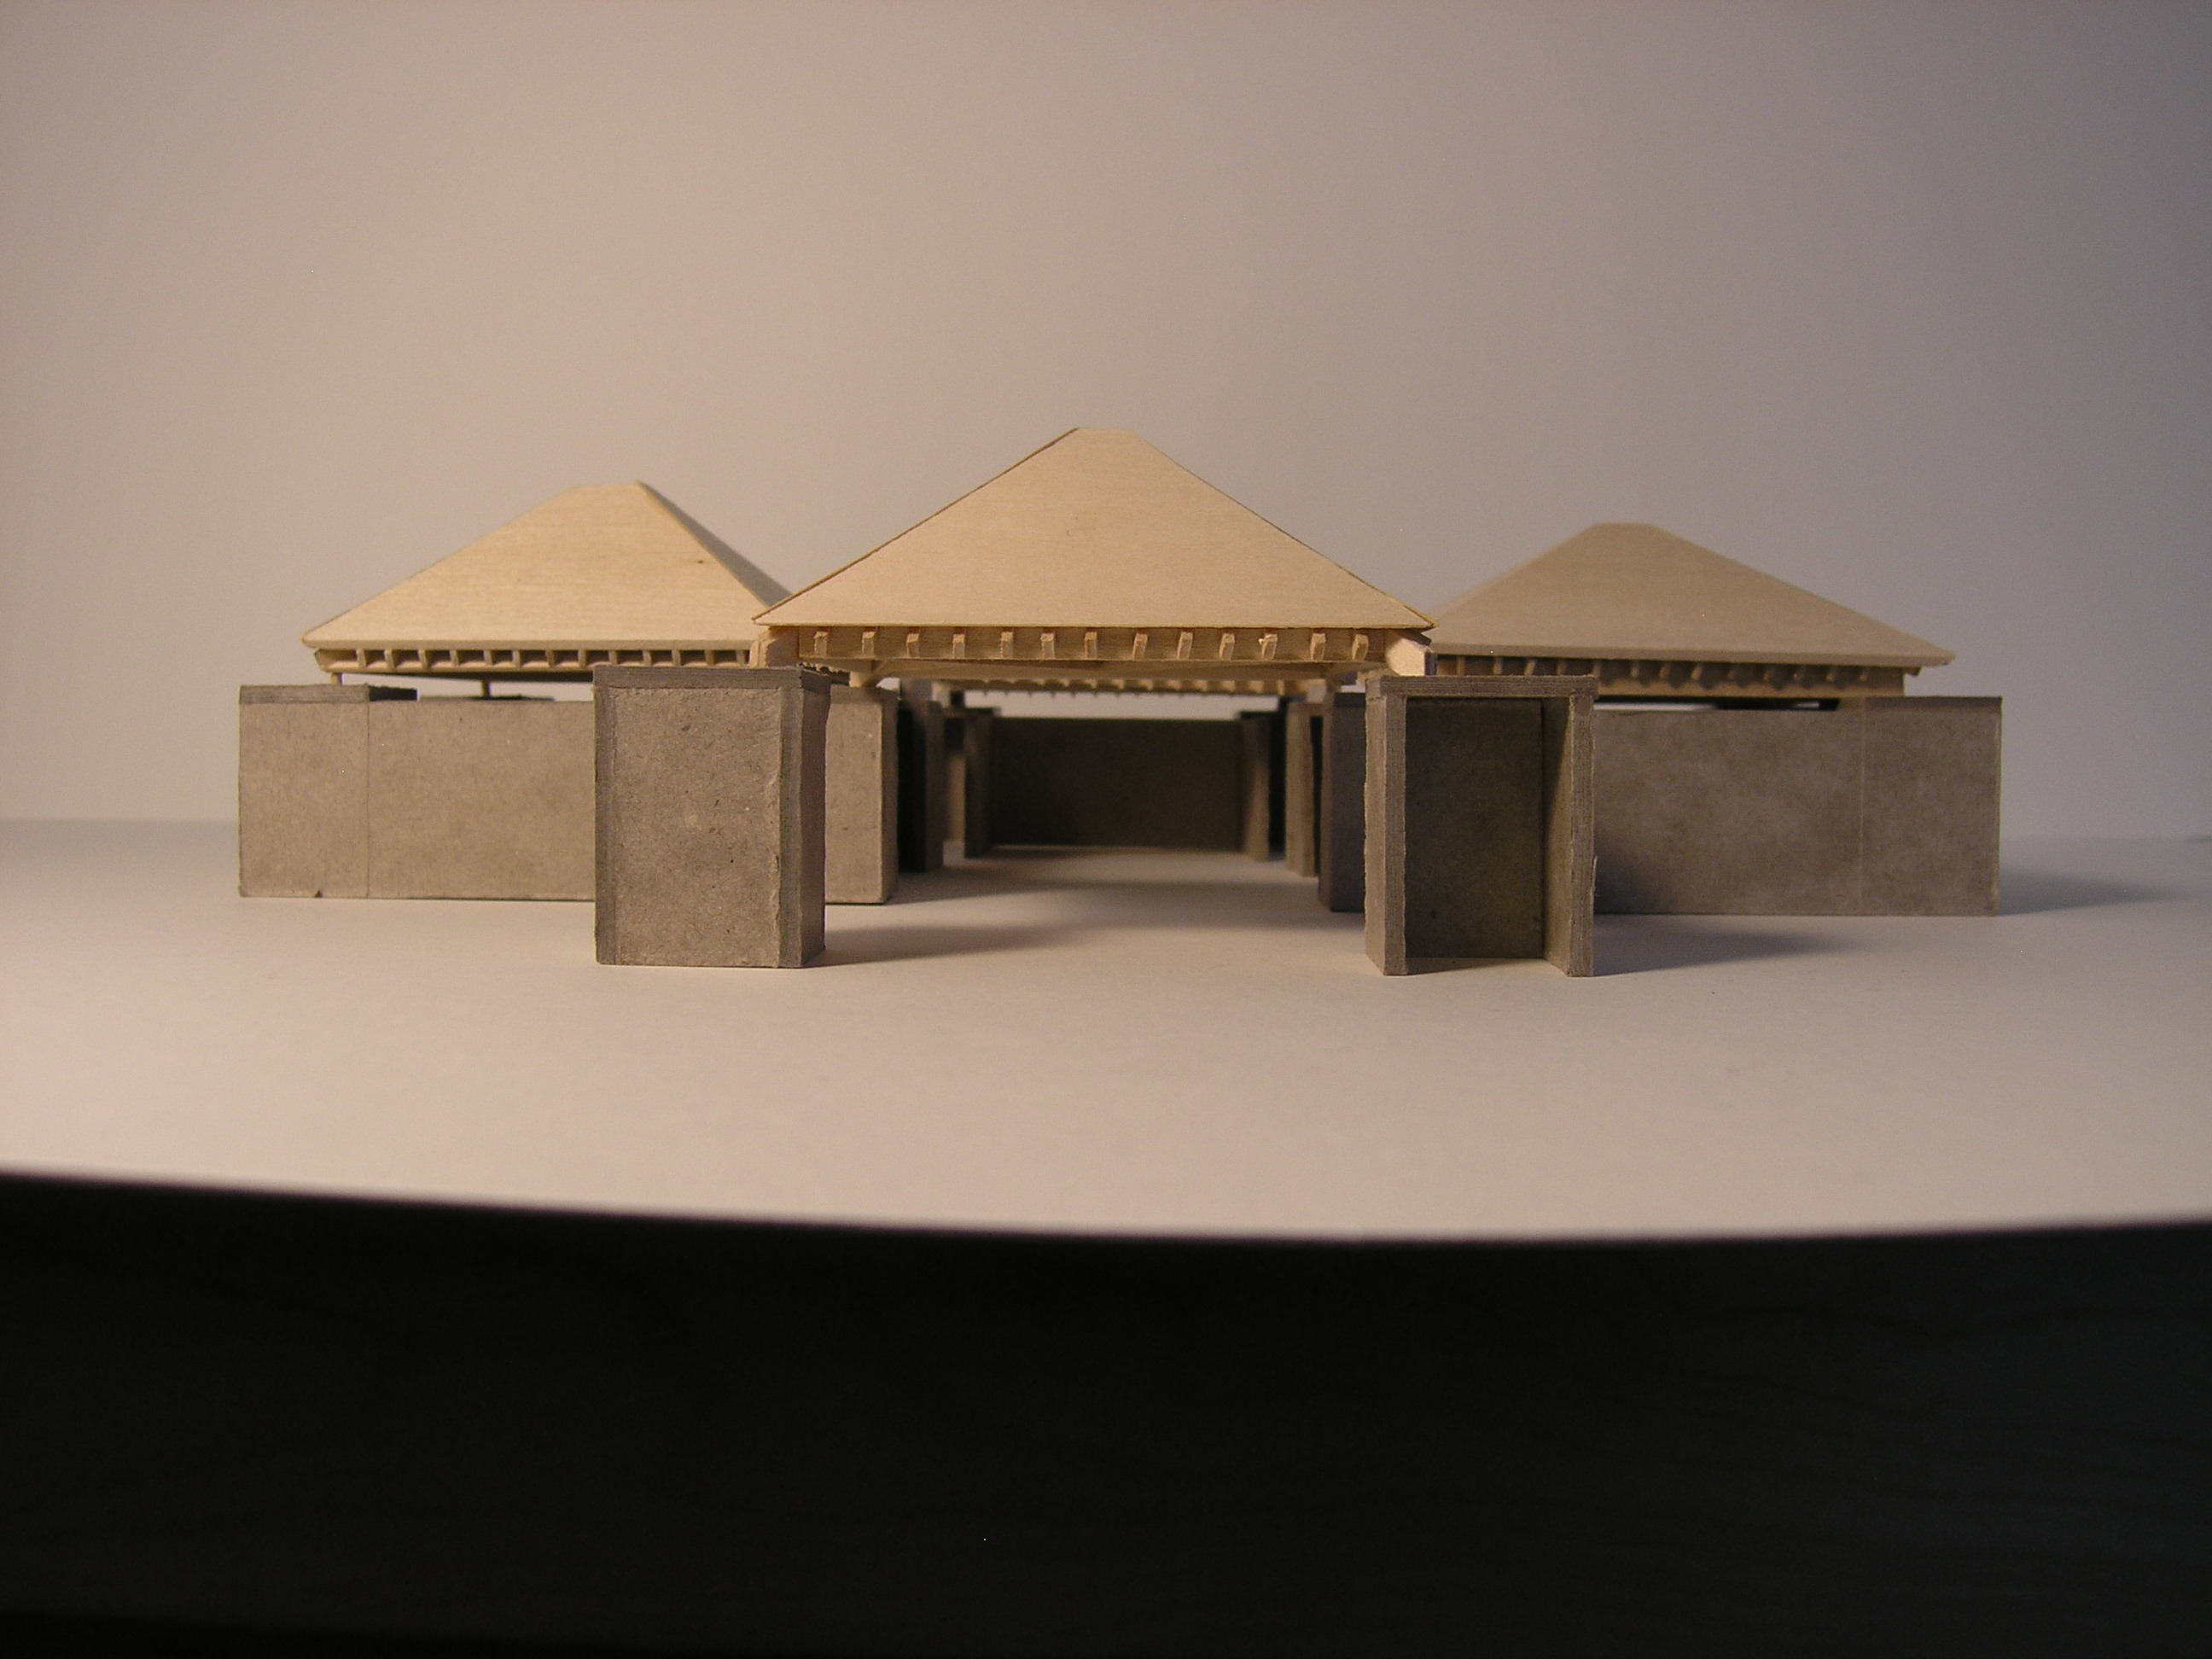 Model a house from an image